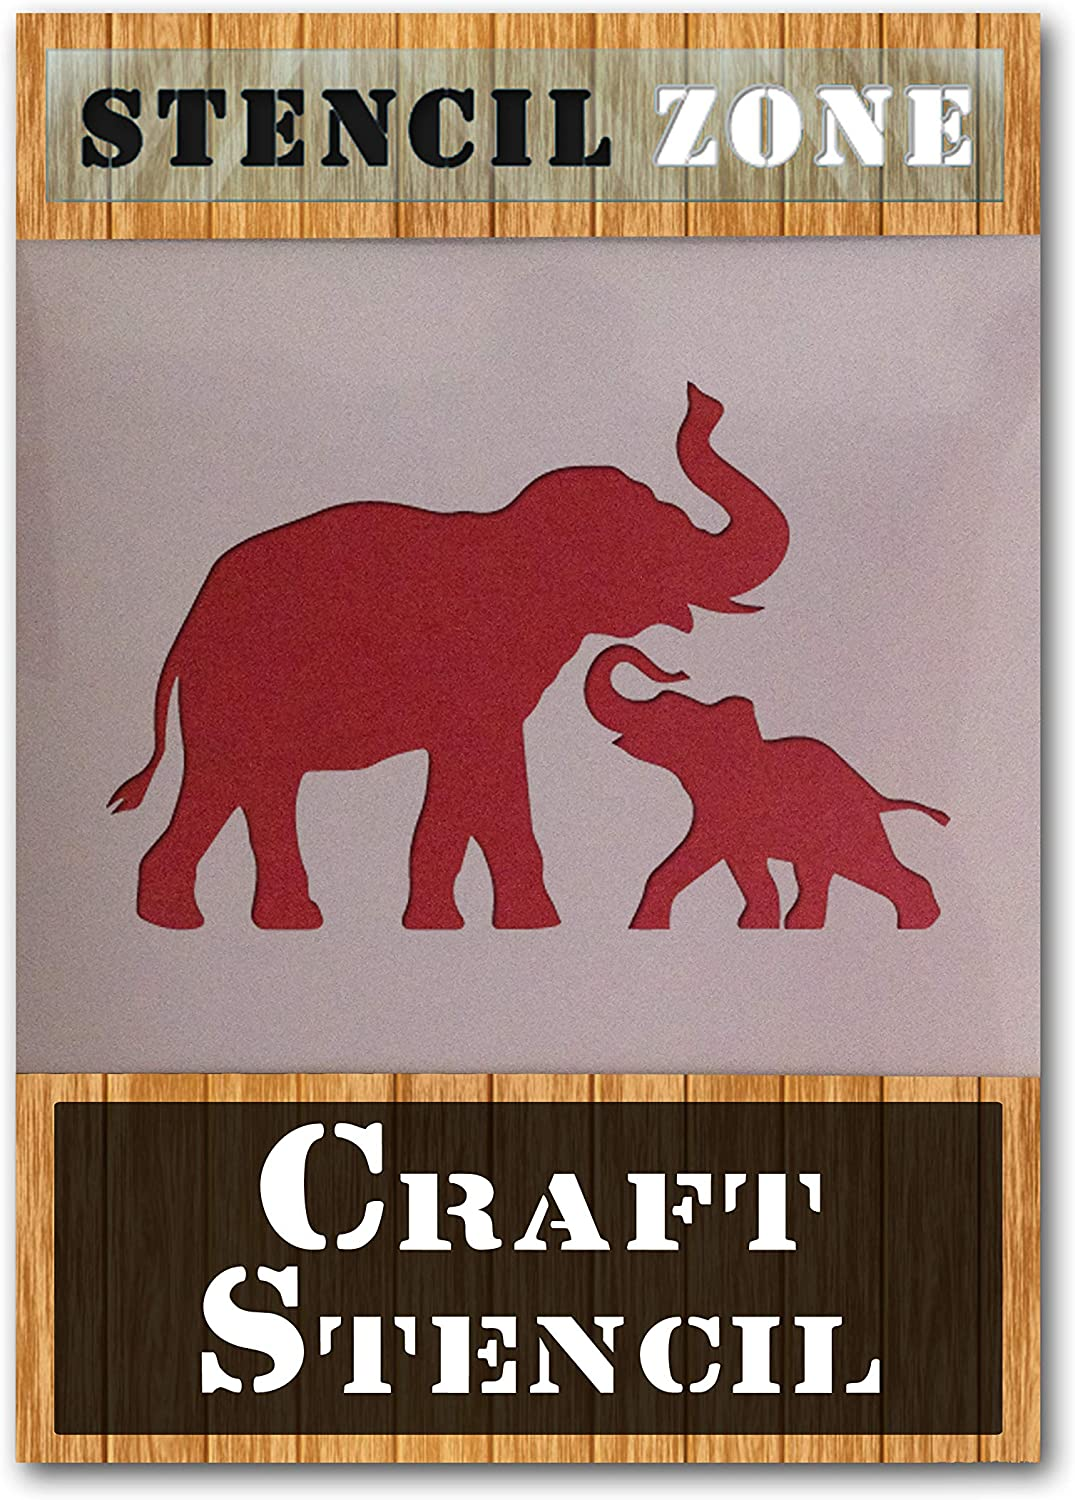 Elephant Family Group Animal Mylar Airbrush Painting Wall Art Crafts Stencil 1